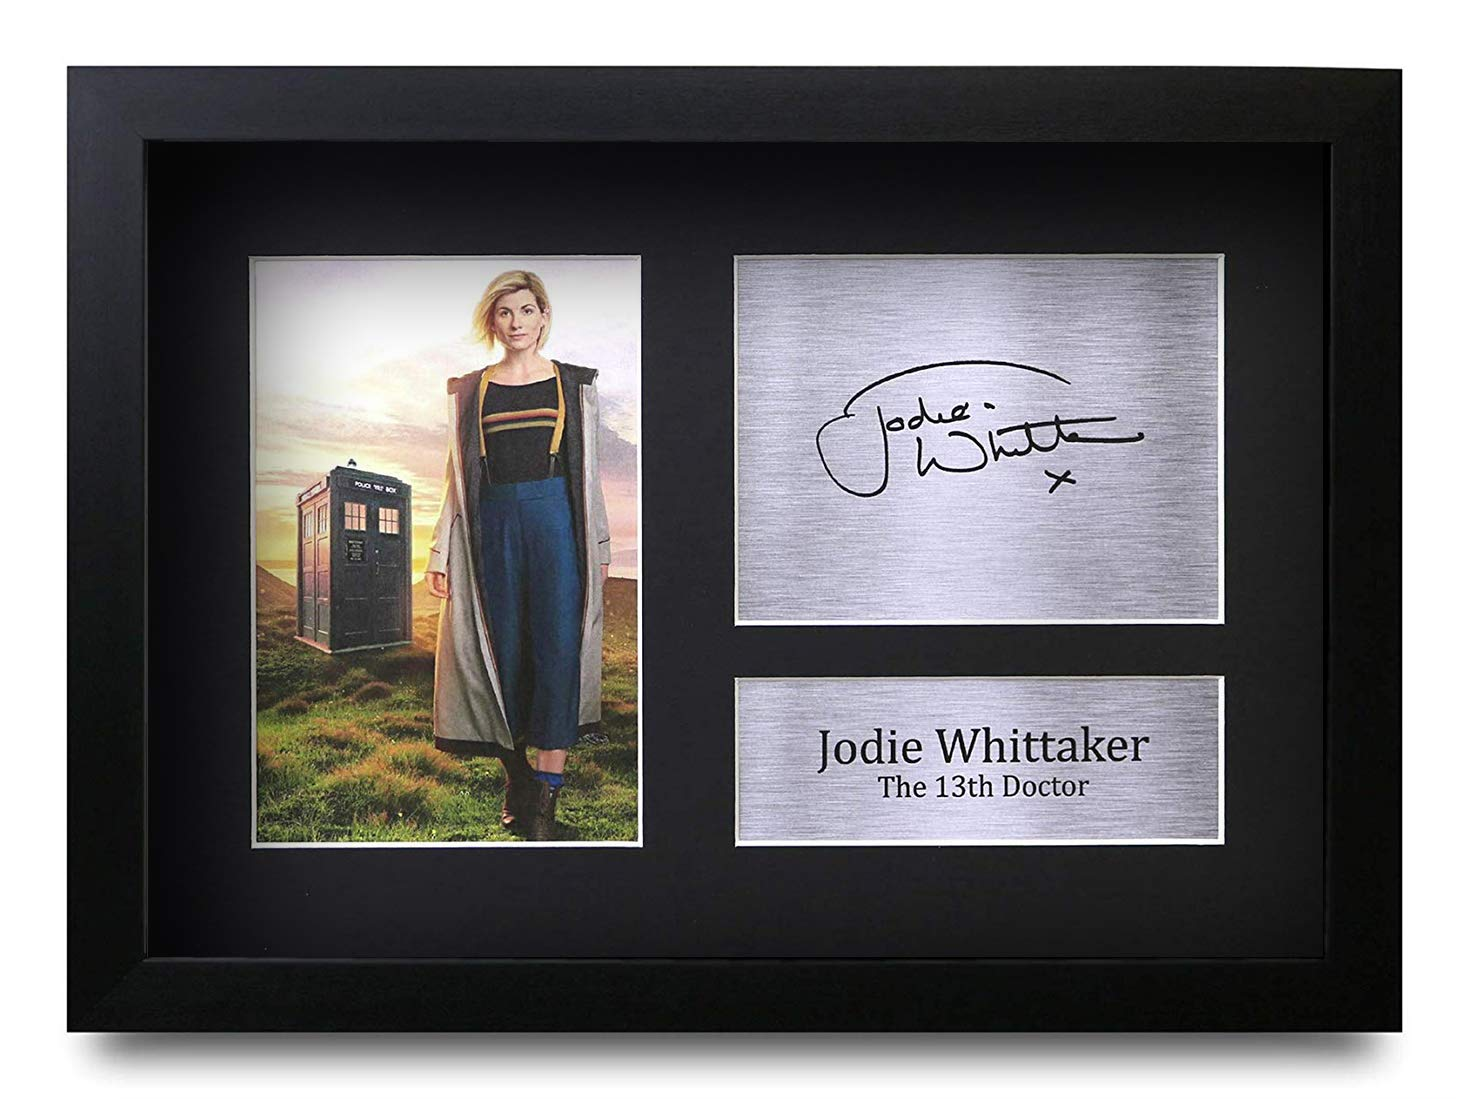 HWC Trading FR Jodie Whittaker Gift Signed FRAMED A4 Printed Autograph Doctor Dr Who Gifts Photo Picture Print Display